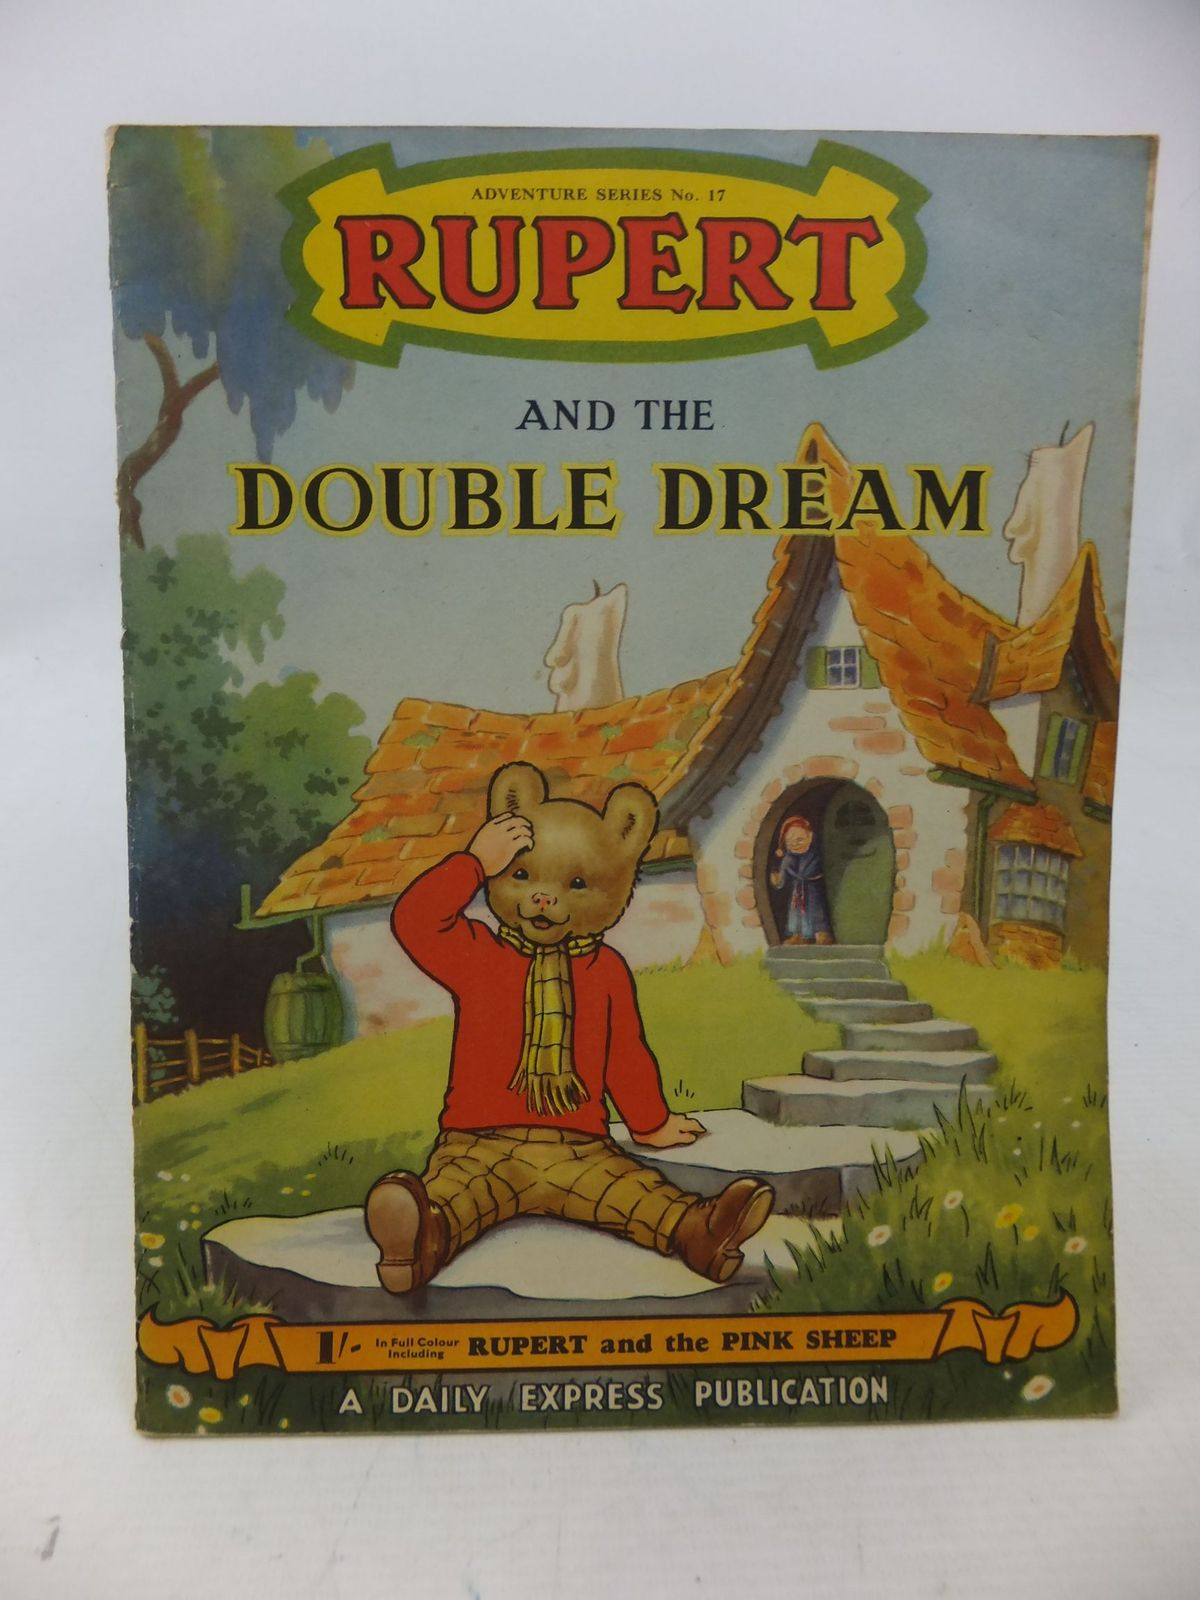 Photo of RUPERT ADVENTURE SERIES No. 17 - RUPERT AND THE DOUBLE DREAM written by Bestall, Alfred published by Daily Express (STOCK CODE: 1109173)  for sale by Stella & Rose's Books